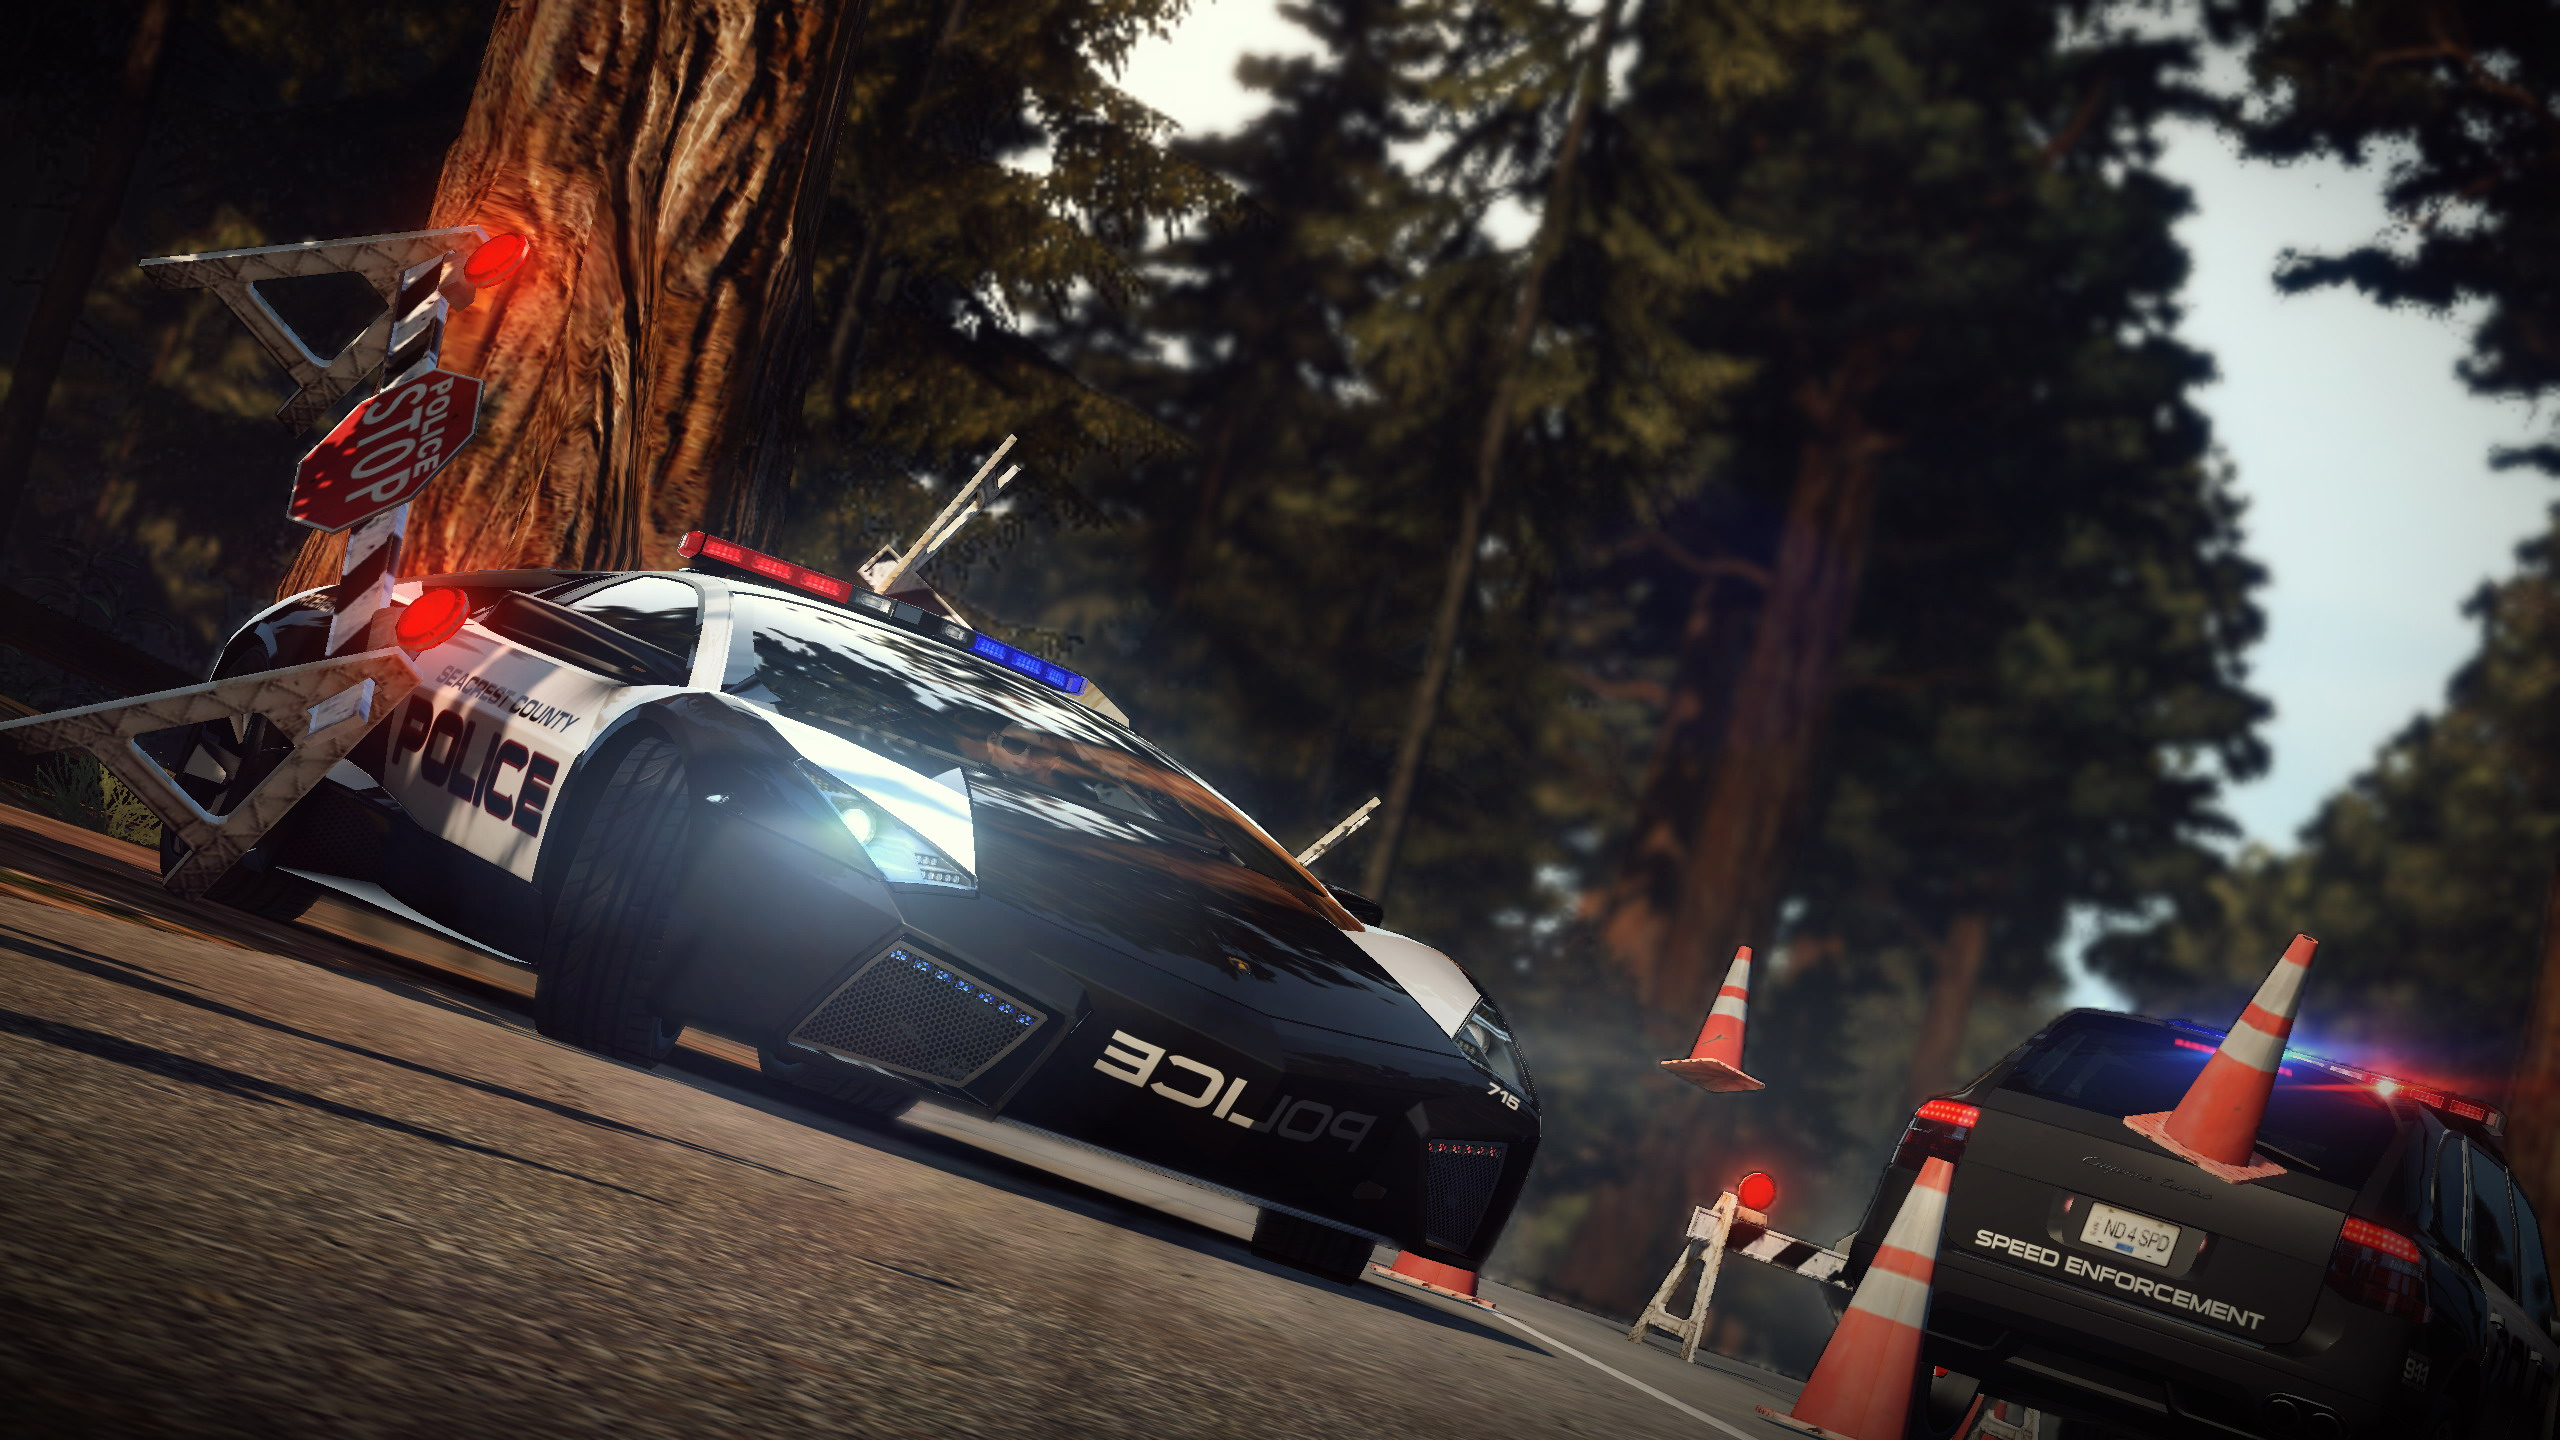 22 Need For Speed: Hot Pursuit HD Wallpapers | Backgrounds.